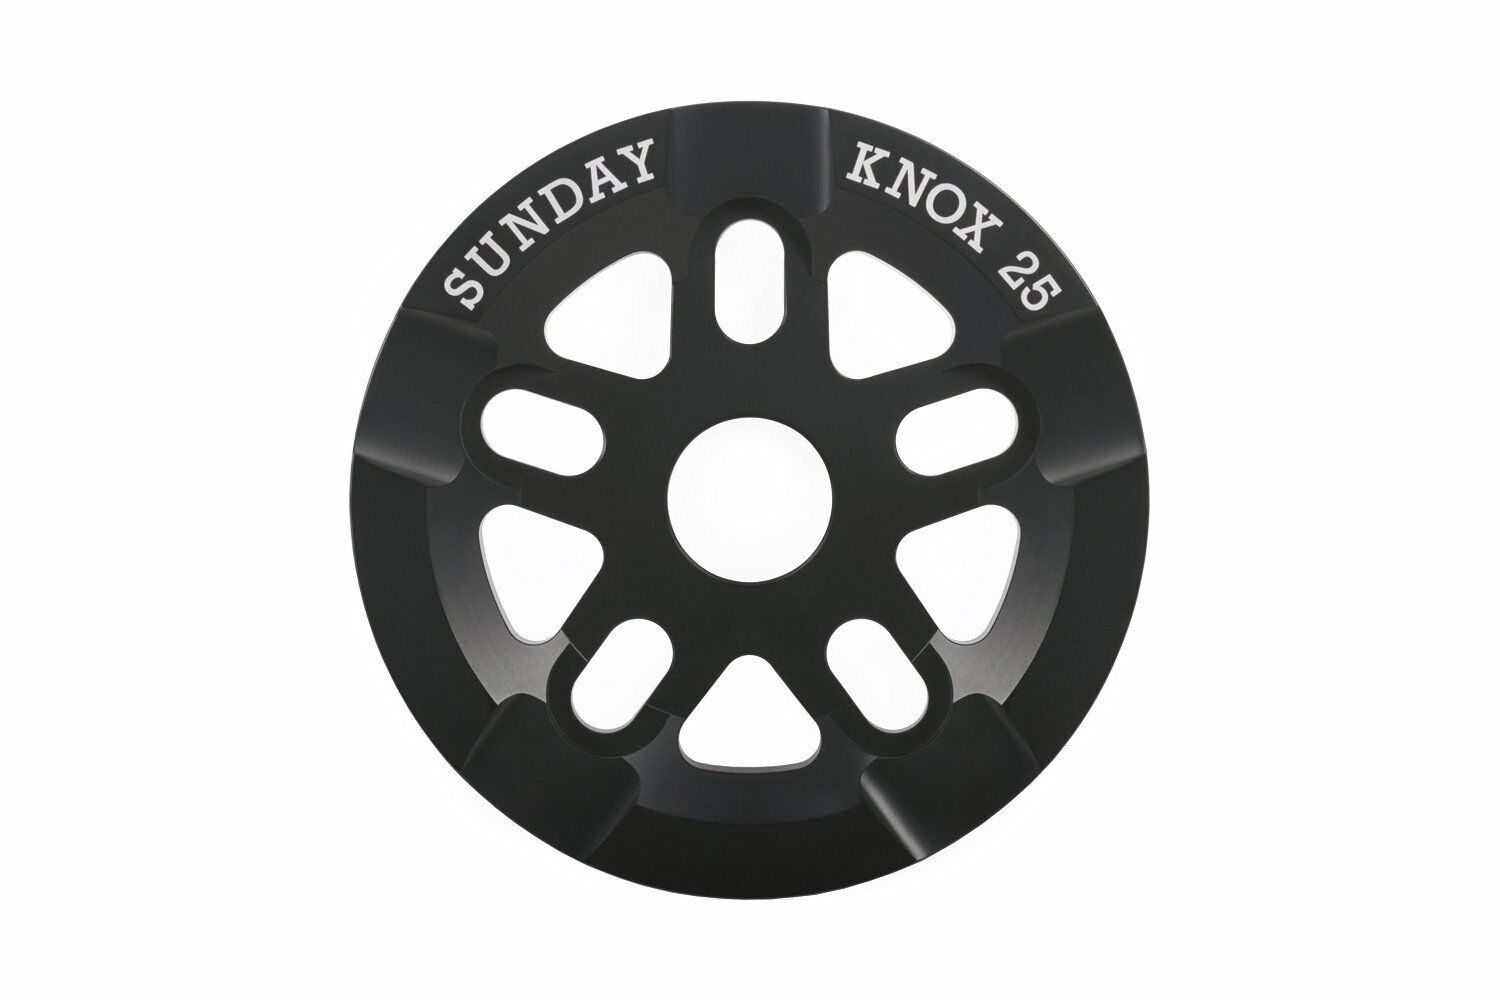 Sunday 25t Knox V2 Guard Sprocket / Chainwheel - Black